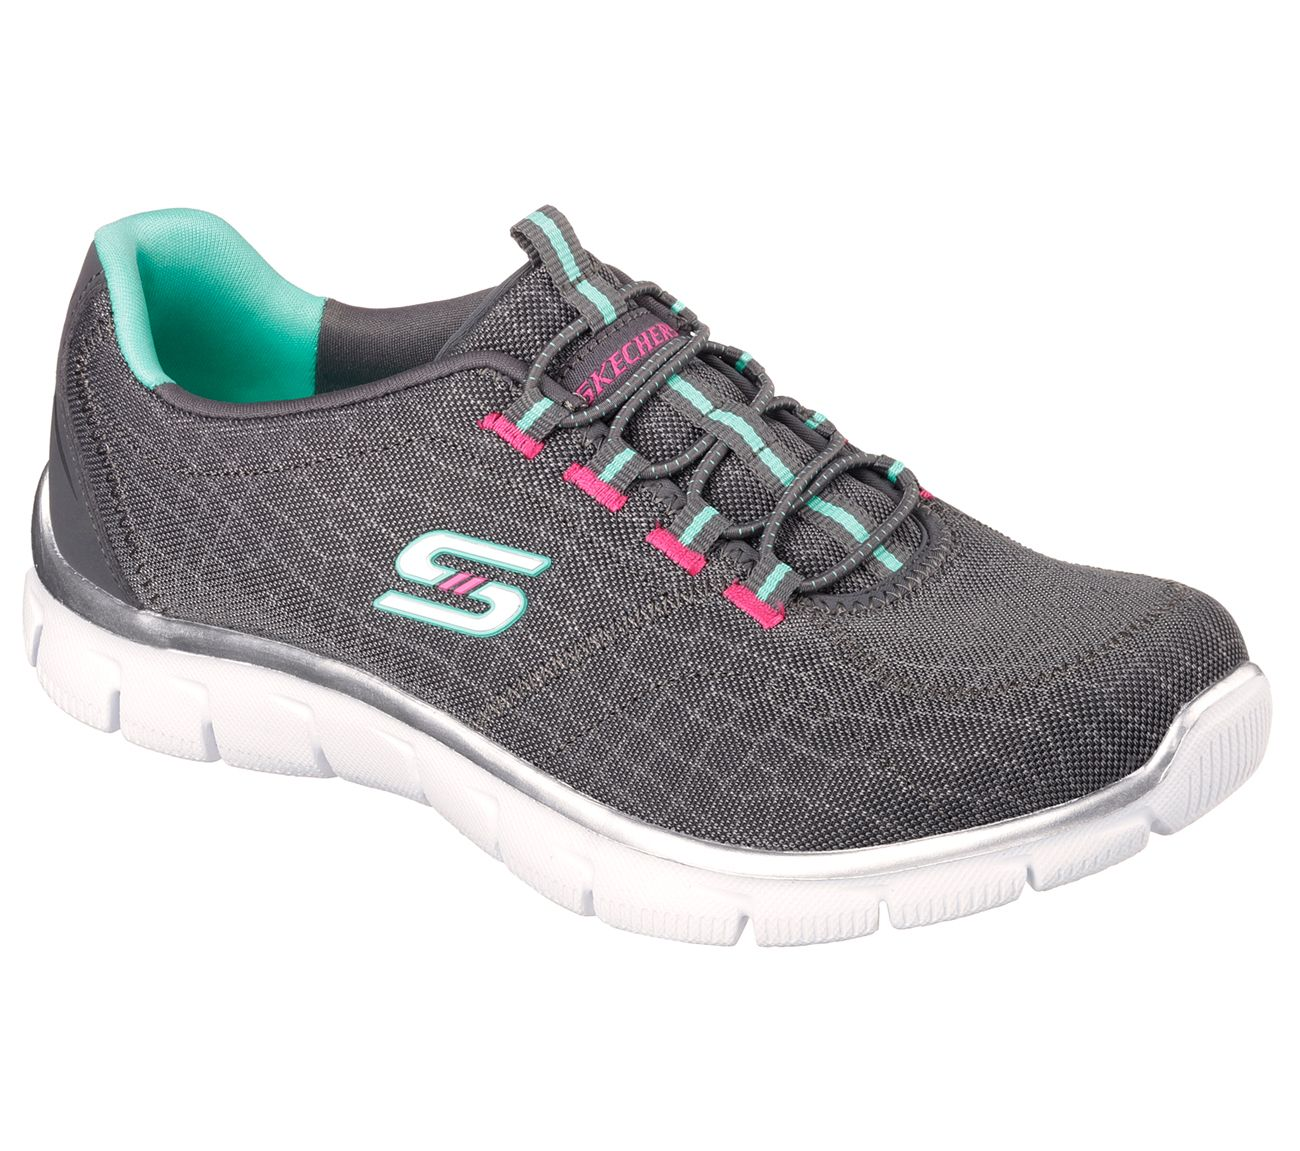 8b8f27c71eabe Buy skechers relaxed fit memory foam sneakers > OFF48% Discounted